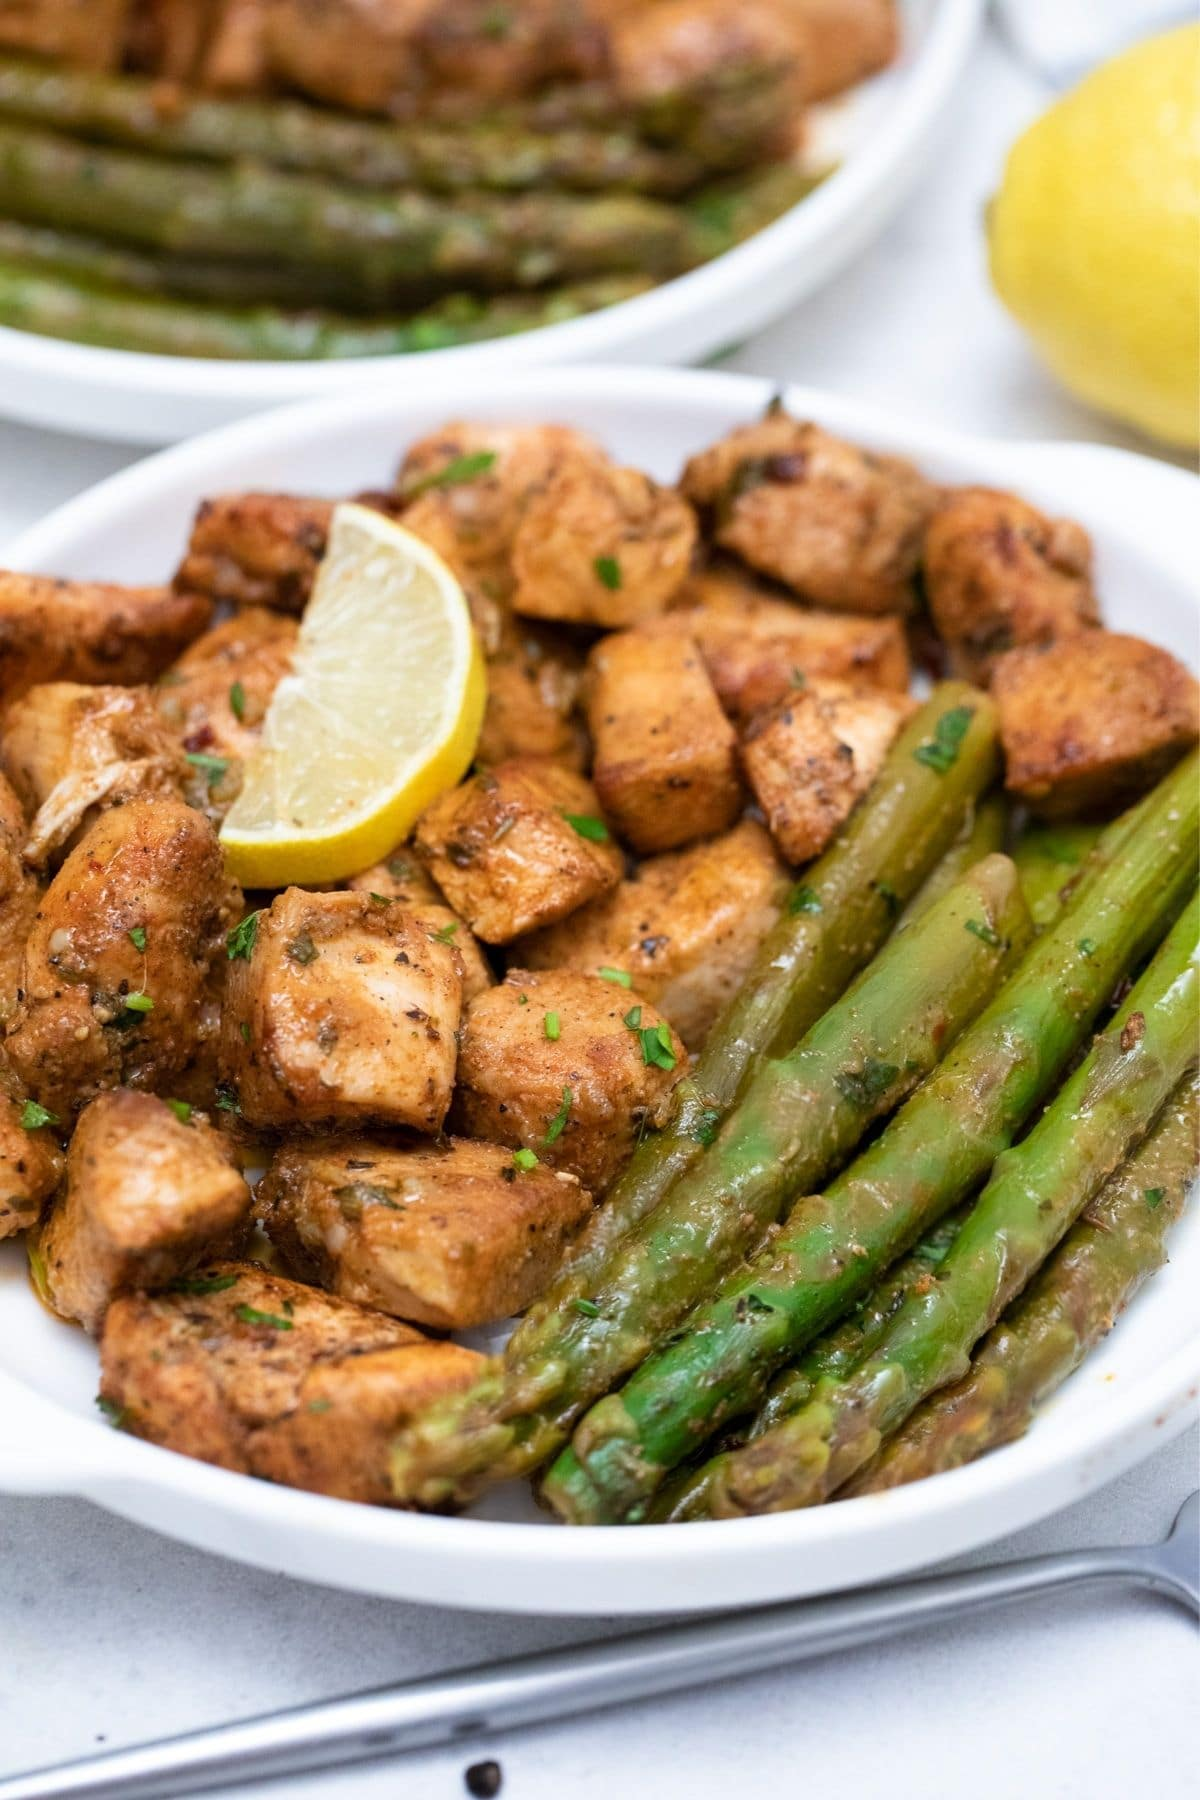 Chicken and asparagus on plate with lemon slice